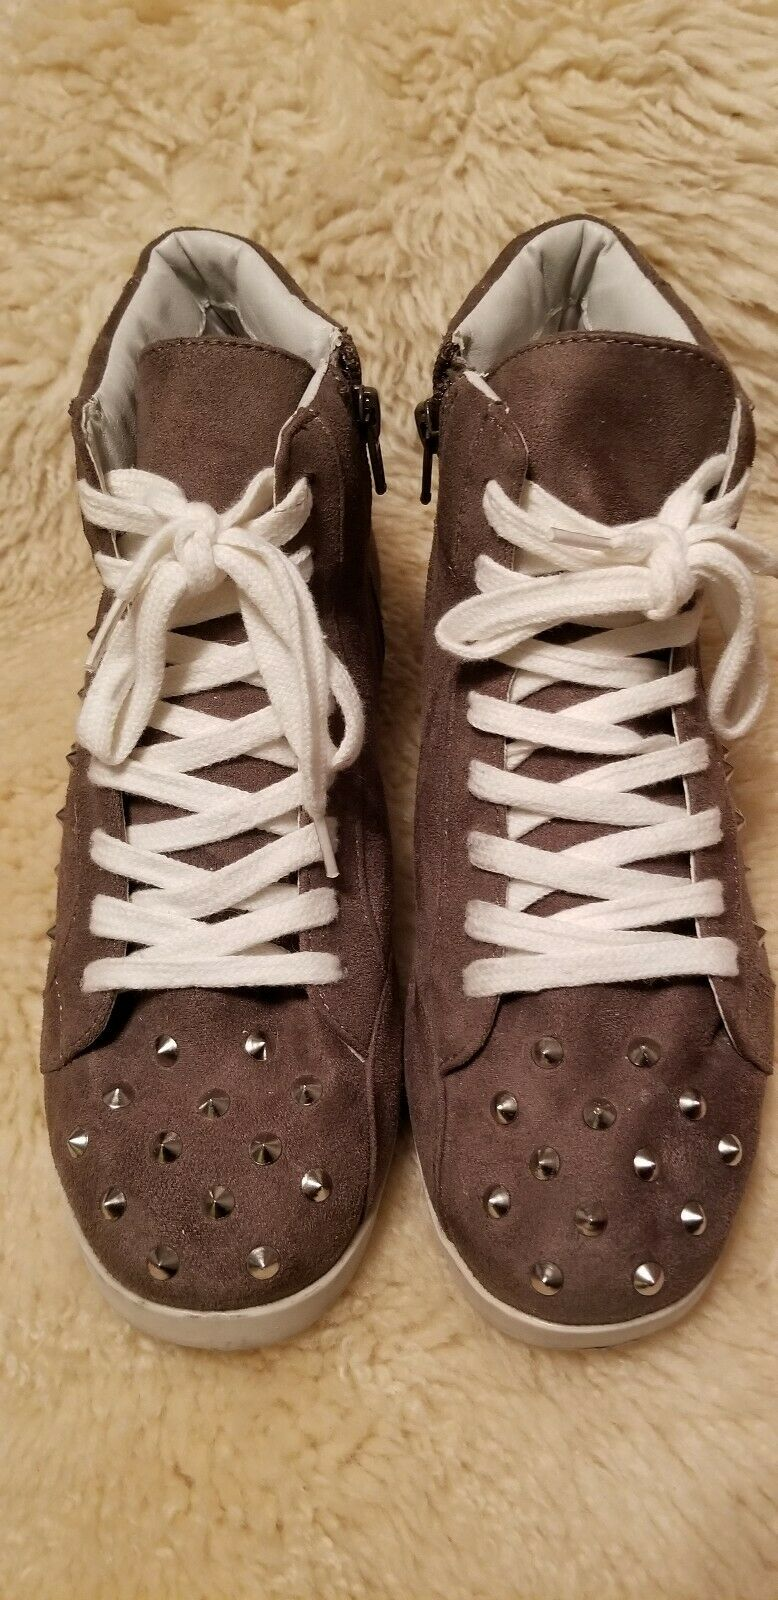 Candies Studded High Top Sneakers,  Taupe, Sz 8